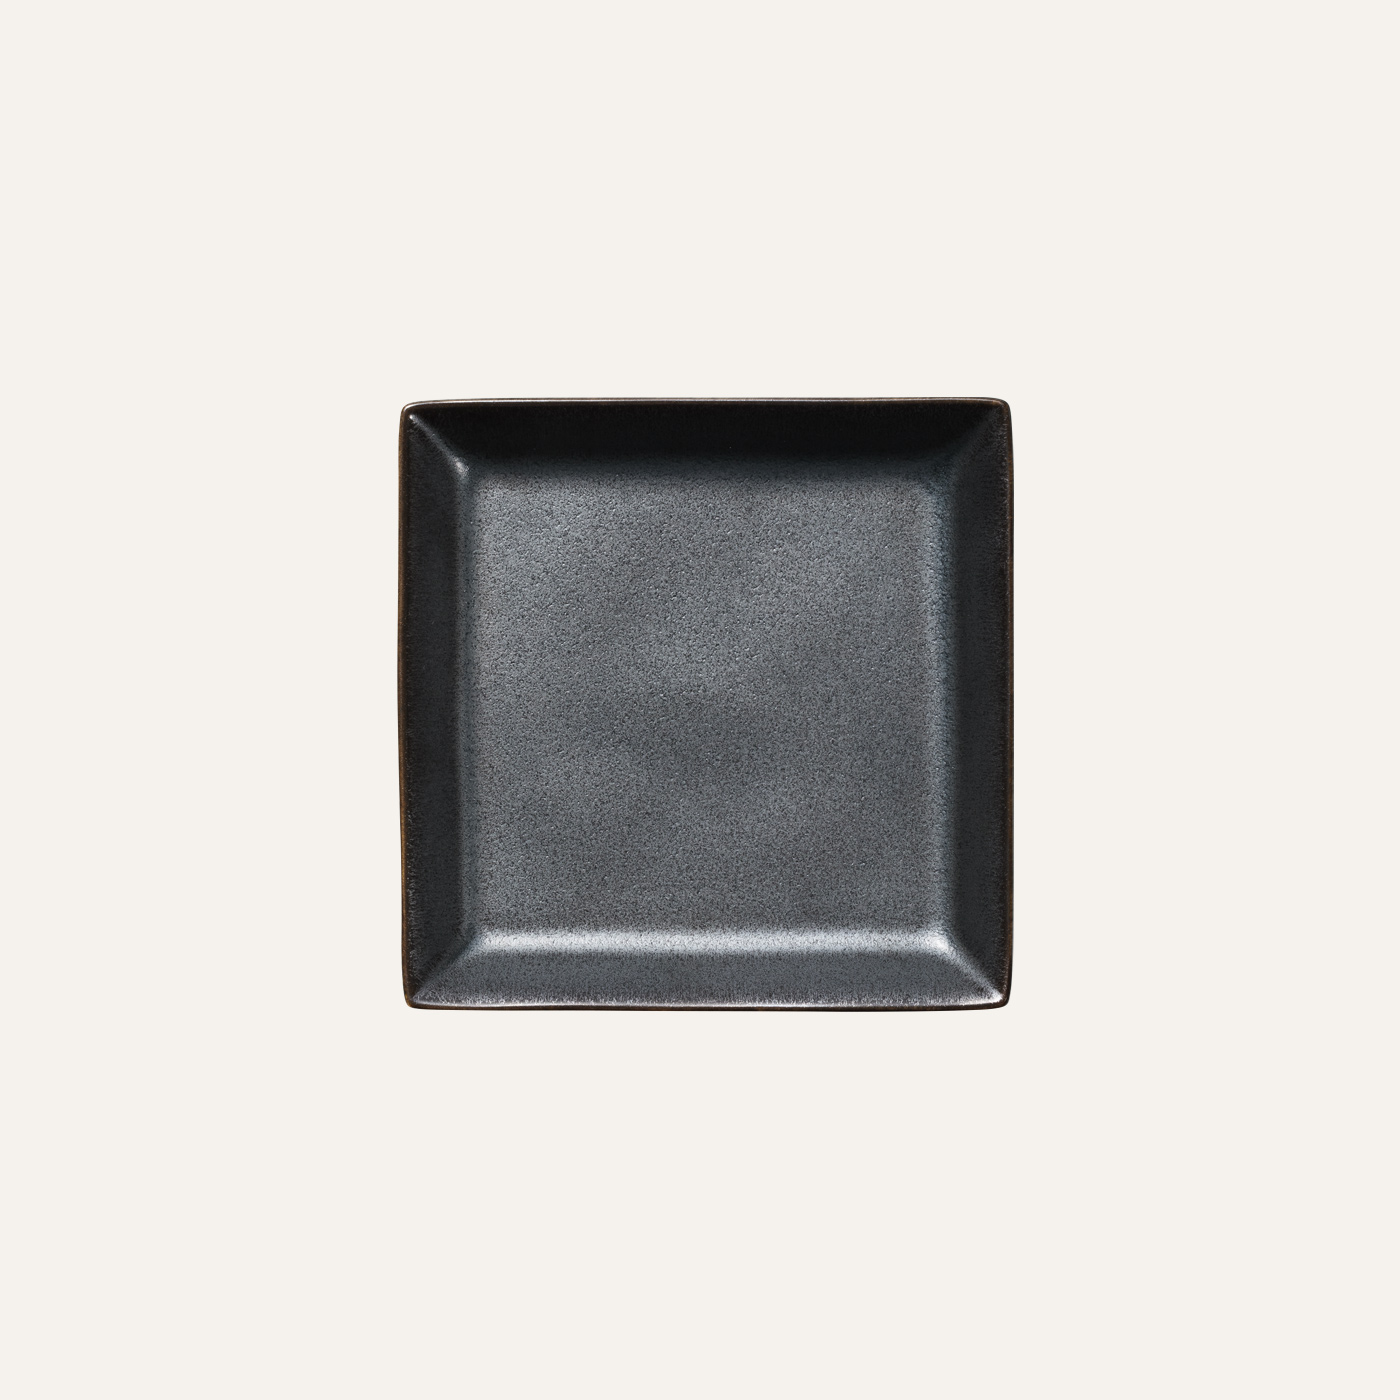 Square plate S